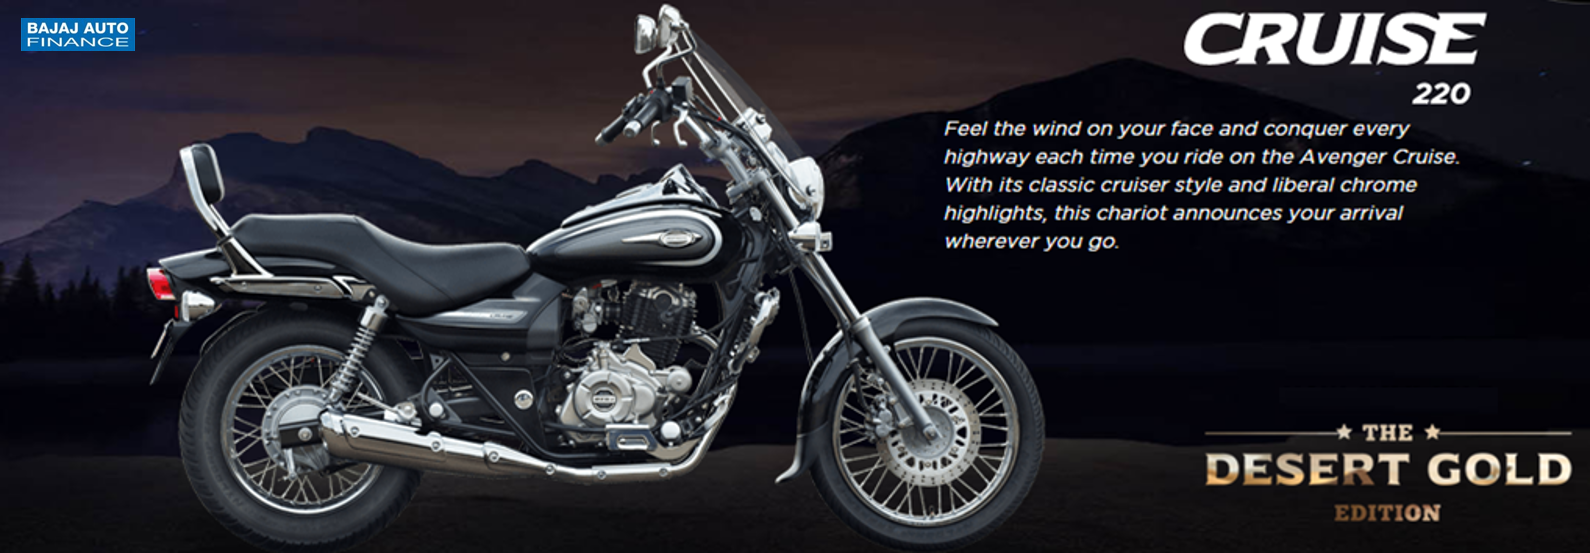 Get Up To 80 Finance With Our Twowheelerloan Ride Home Your